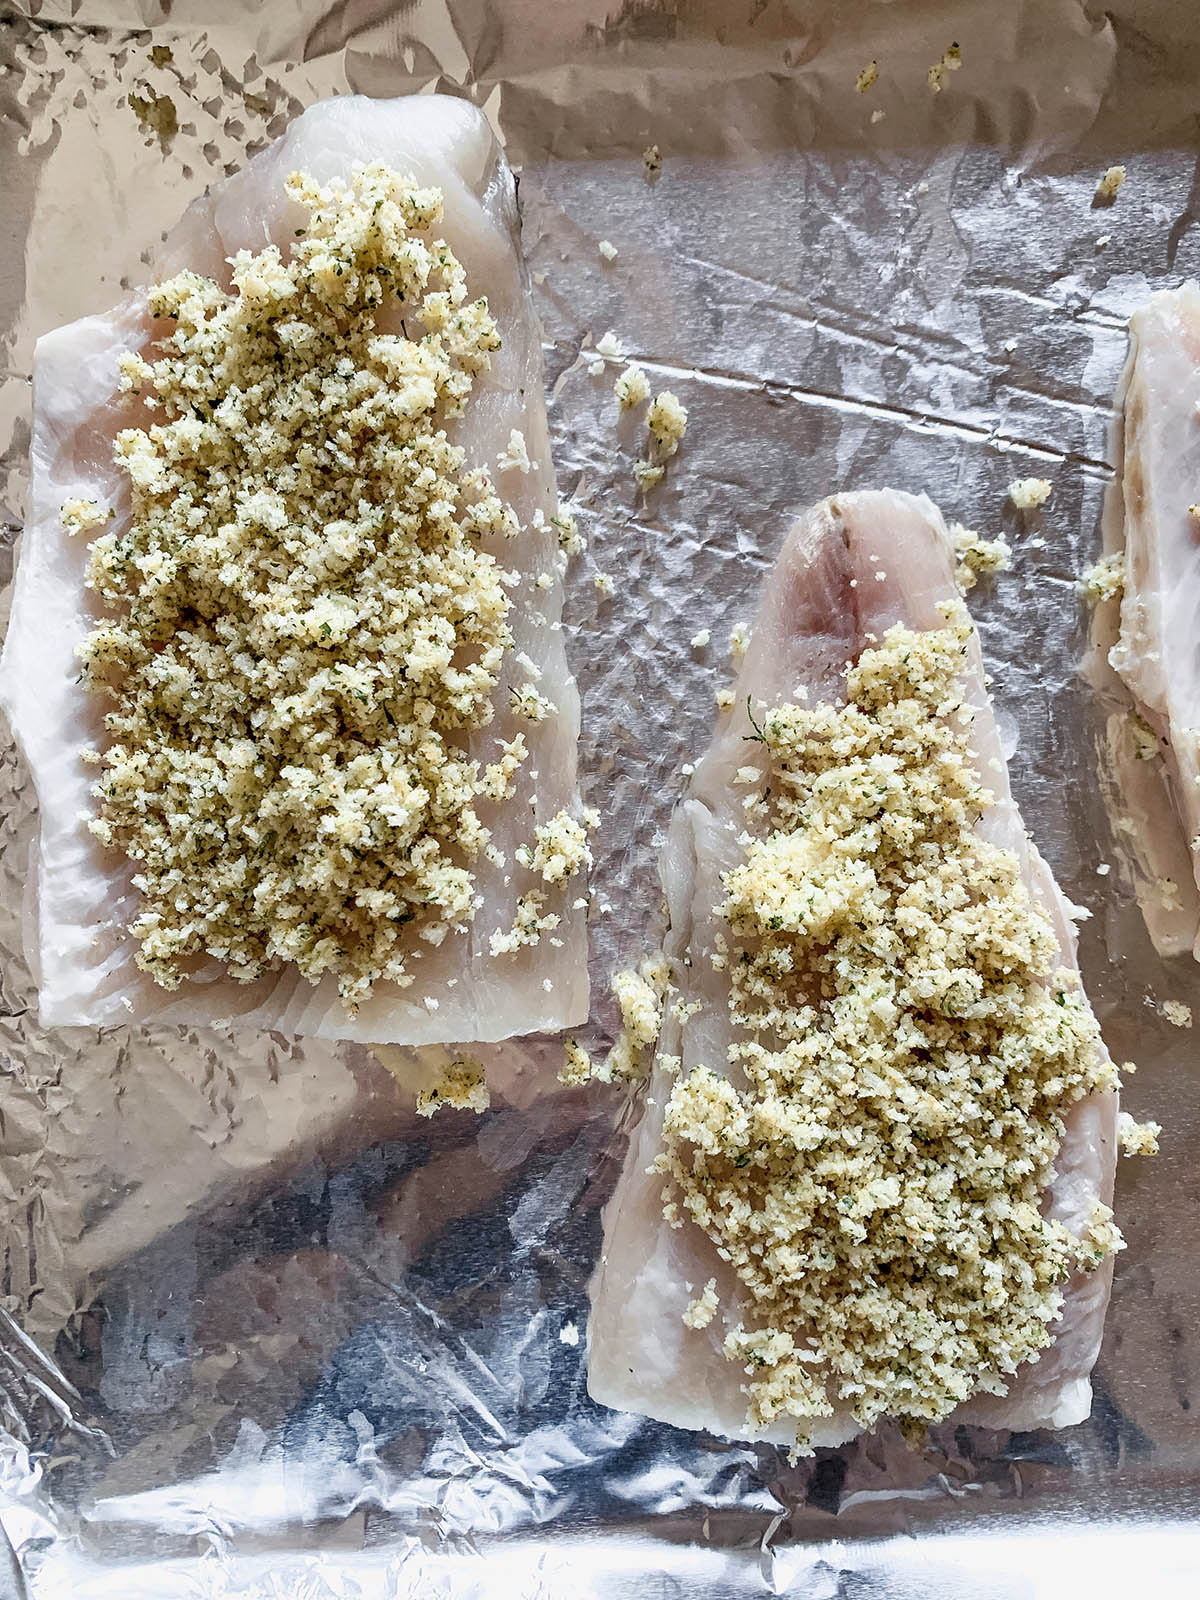 Two portions of raw fish with breadcrumb topping on a foil-lined sheet.